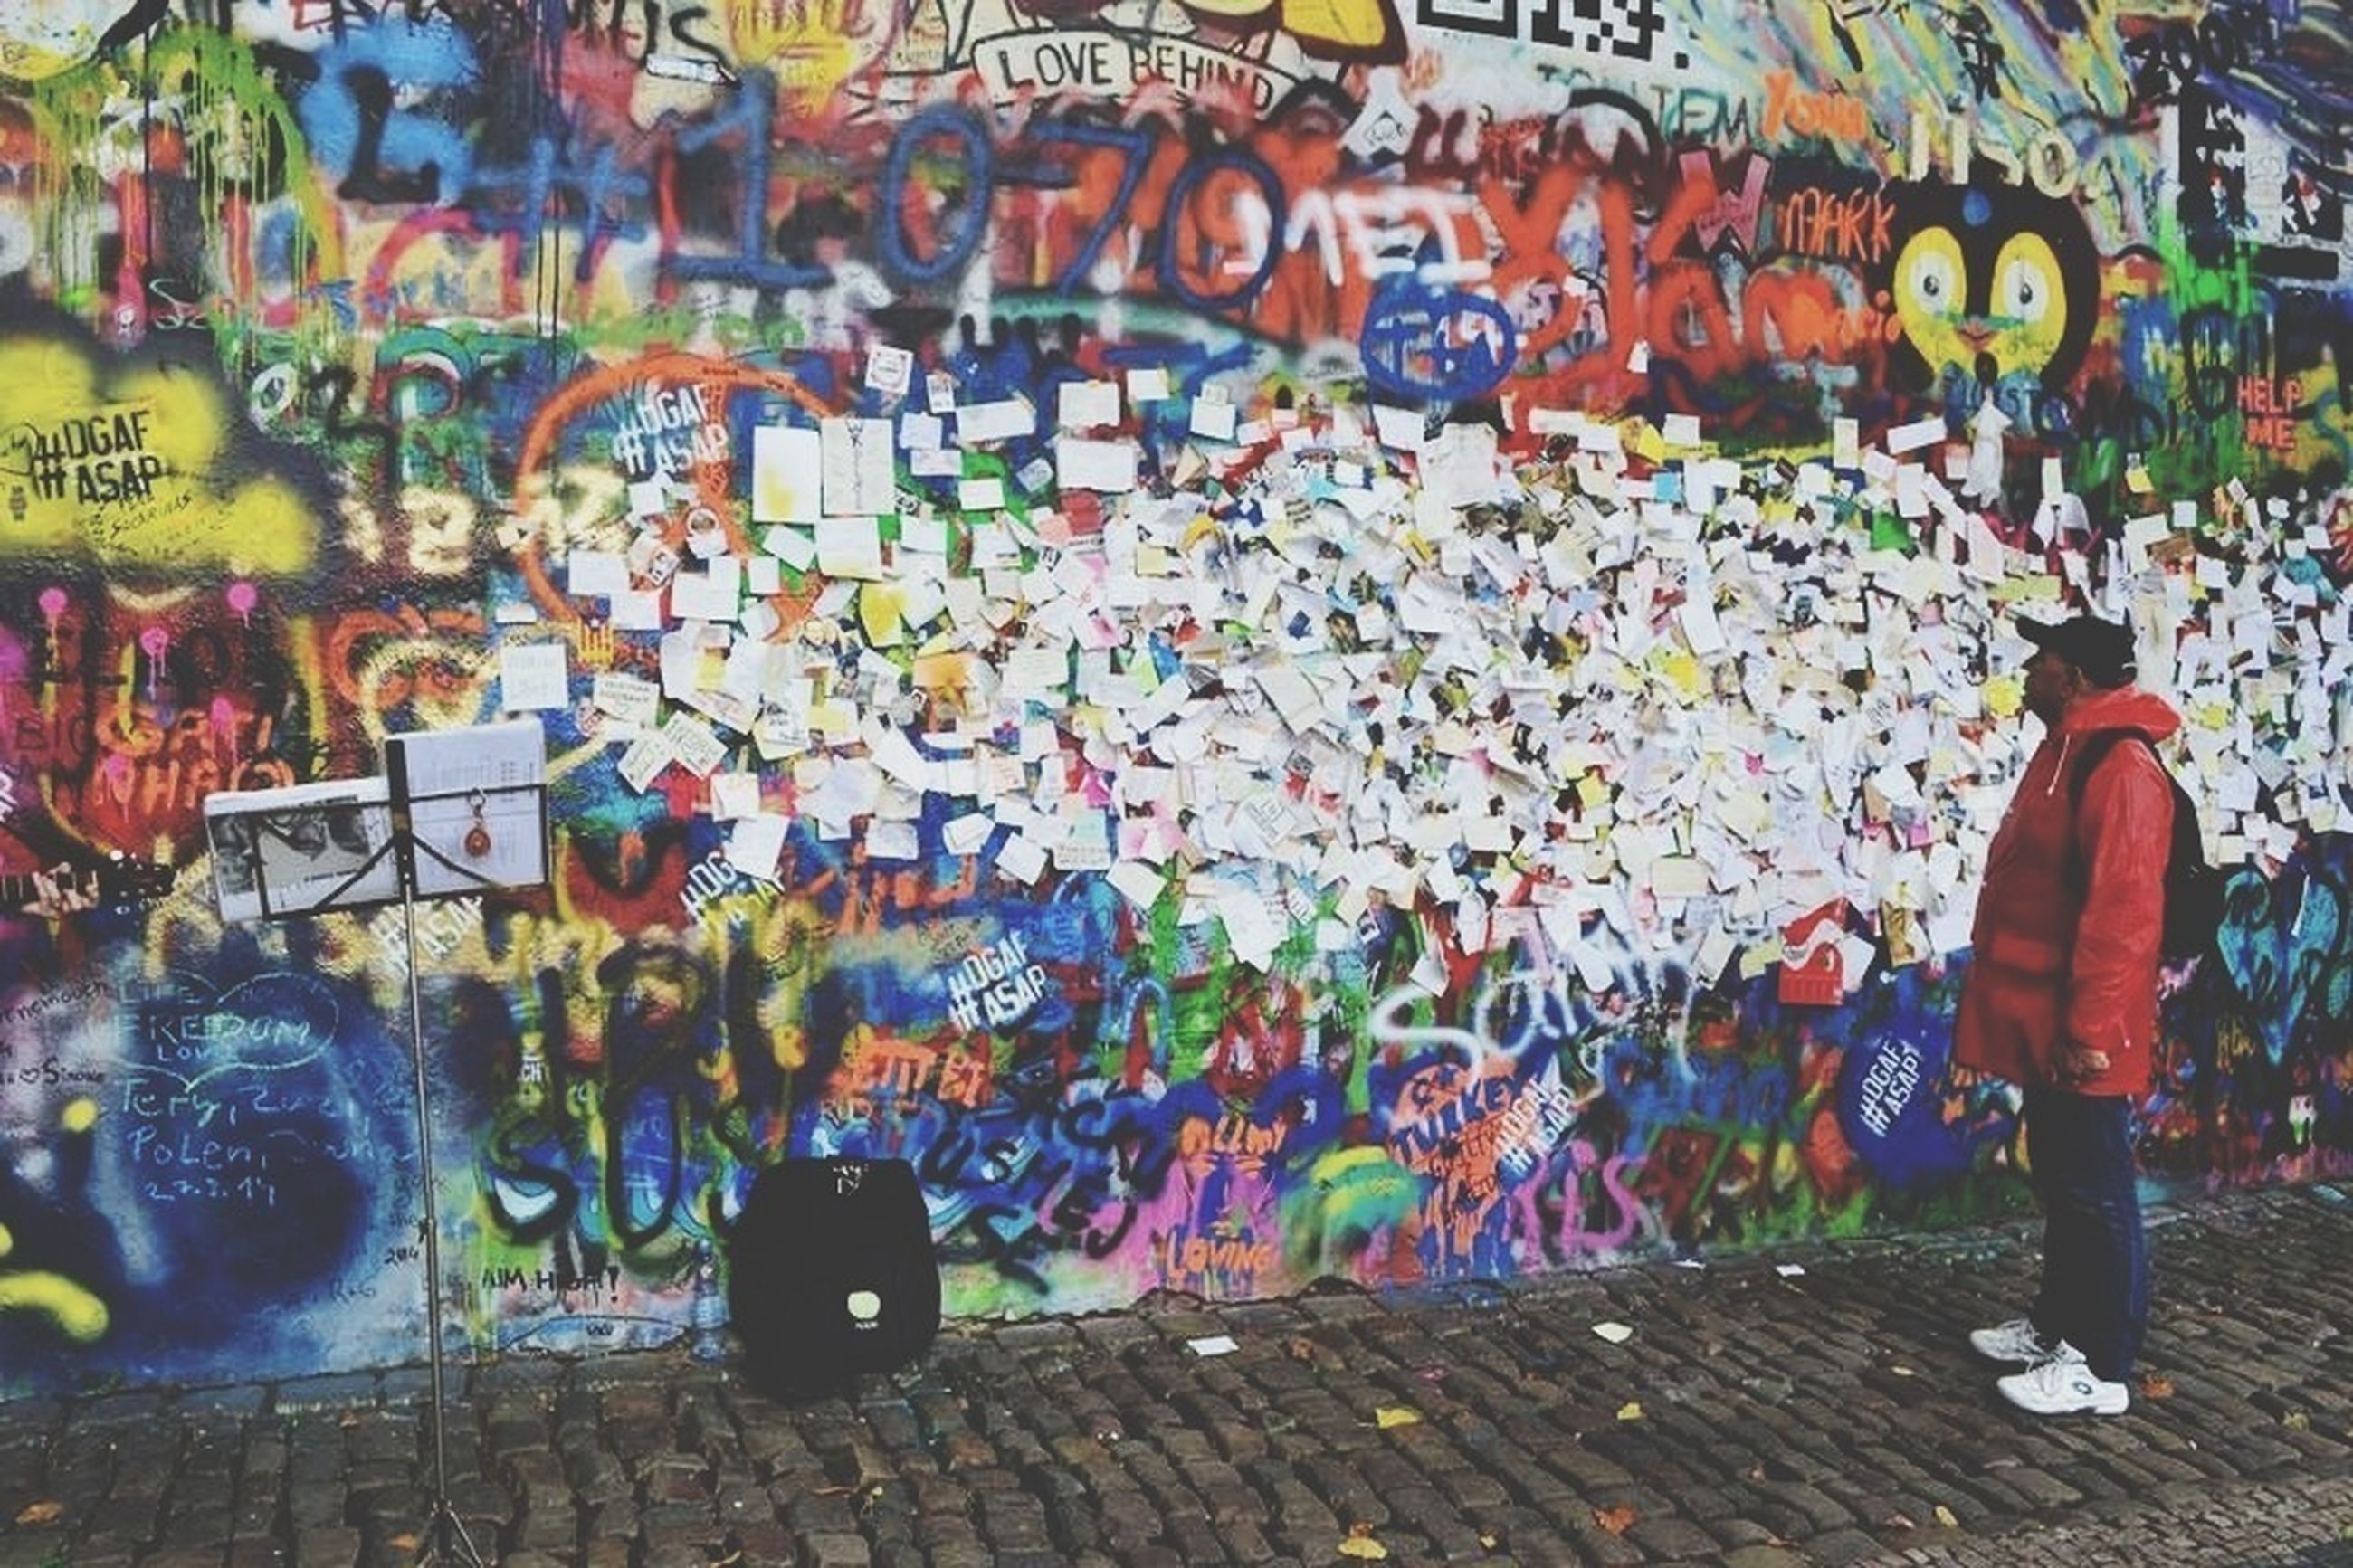 lifestyles, person, leisure activity, multi colored, men, graffiti, street, standing, rear view, casual clothing, walking, full length, wall - building feature, text, built structure, large group of people, illuminated